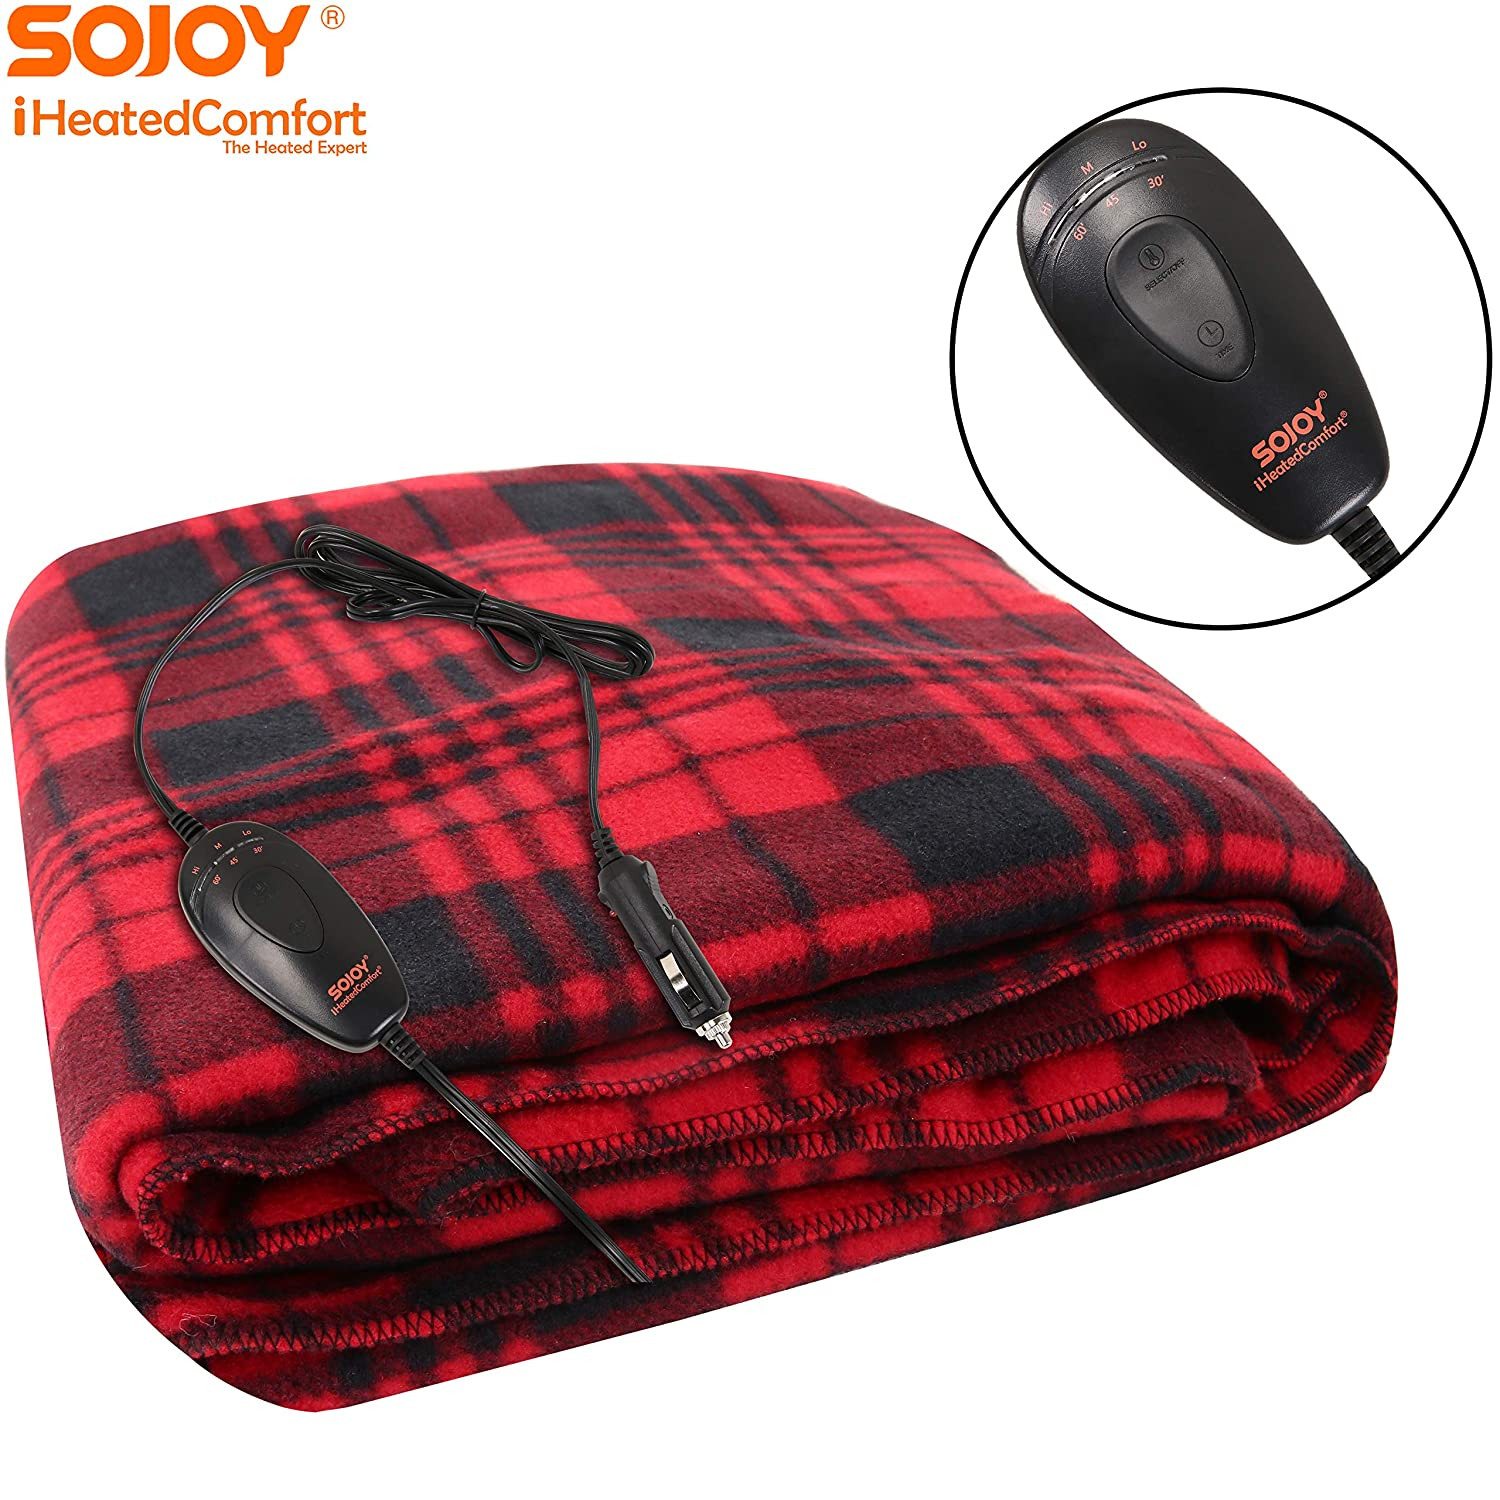 Sojoy 12V Heated Smart Multifunctional Travel Electric Blanket and Heated-Cushion Cover Bundle for Car Boats or RV with High//Mid//Low Temp Control Sojoy Auto Accessories Truck 60x 40 Black /& Checkered Burgundy